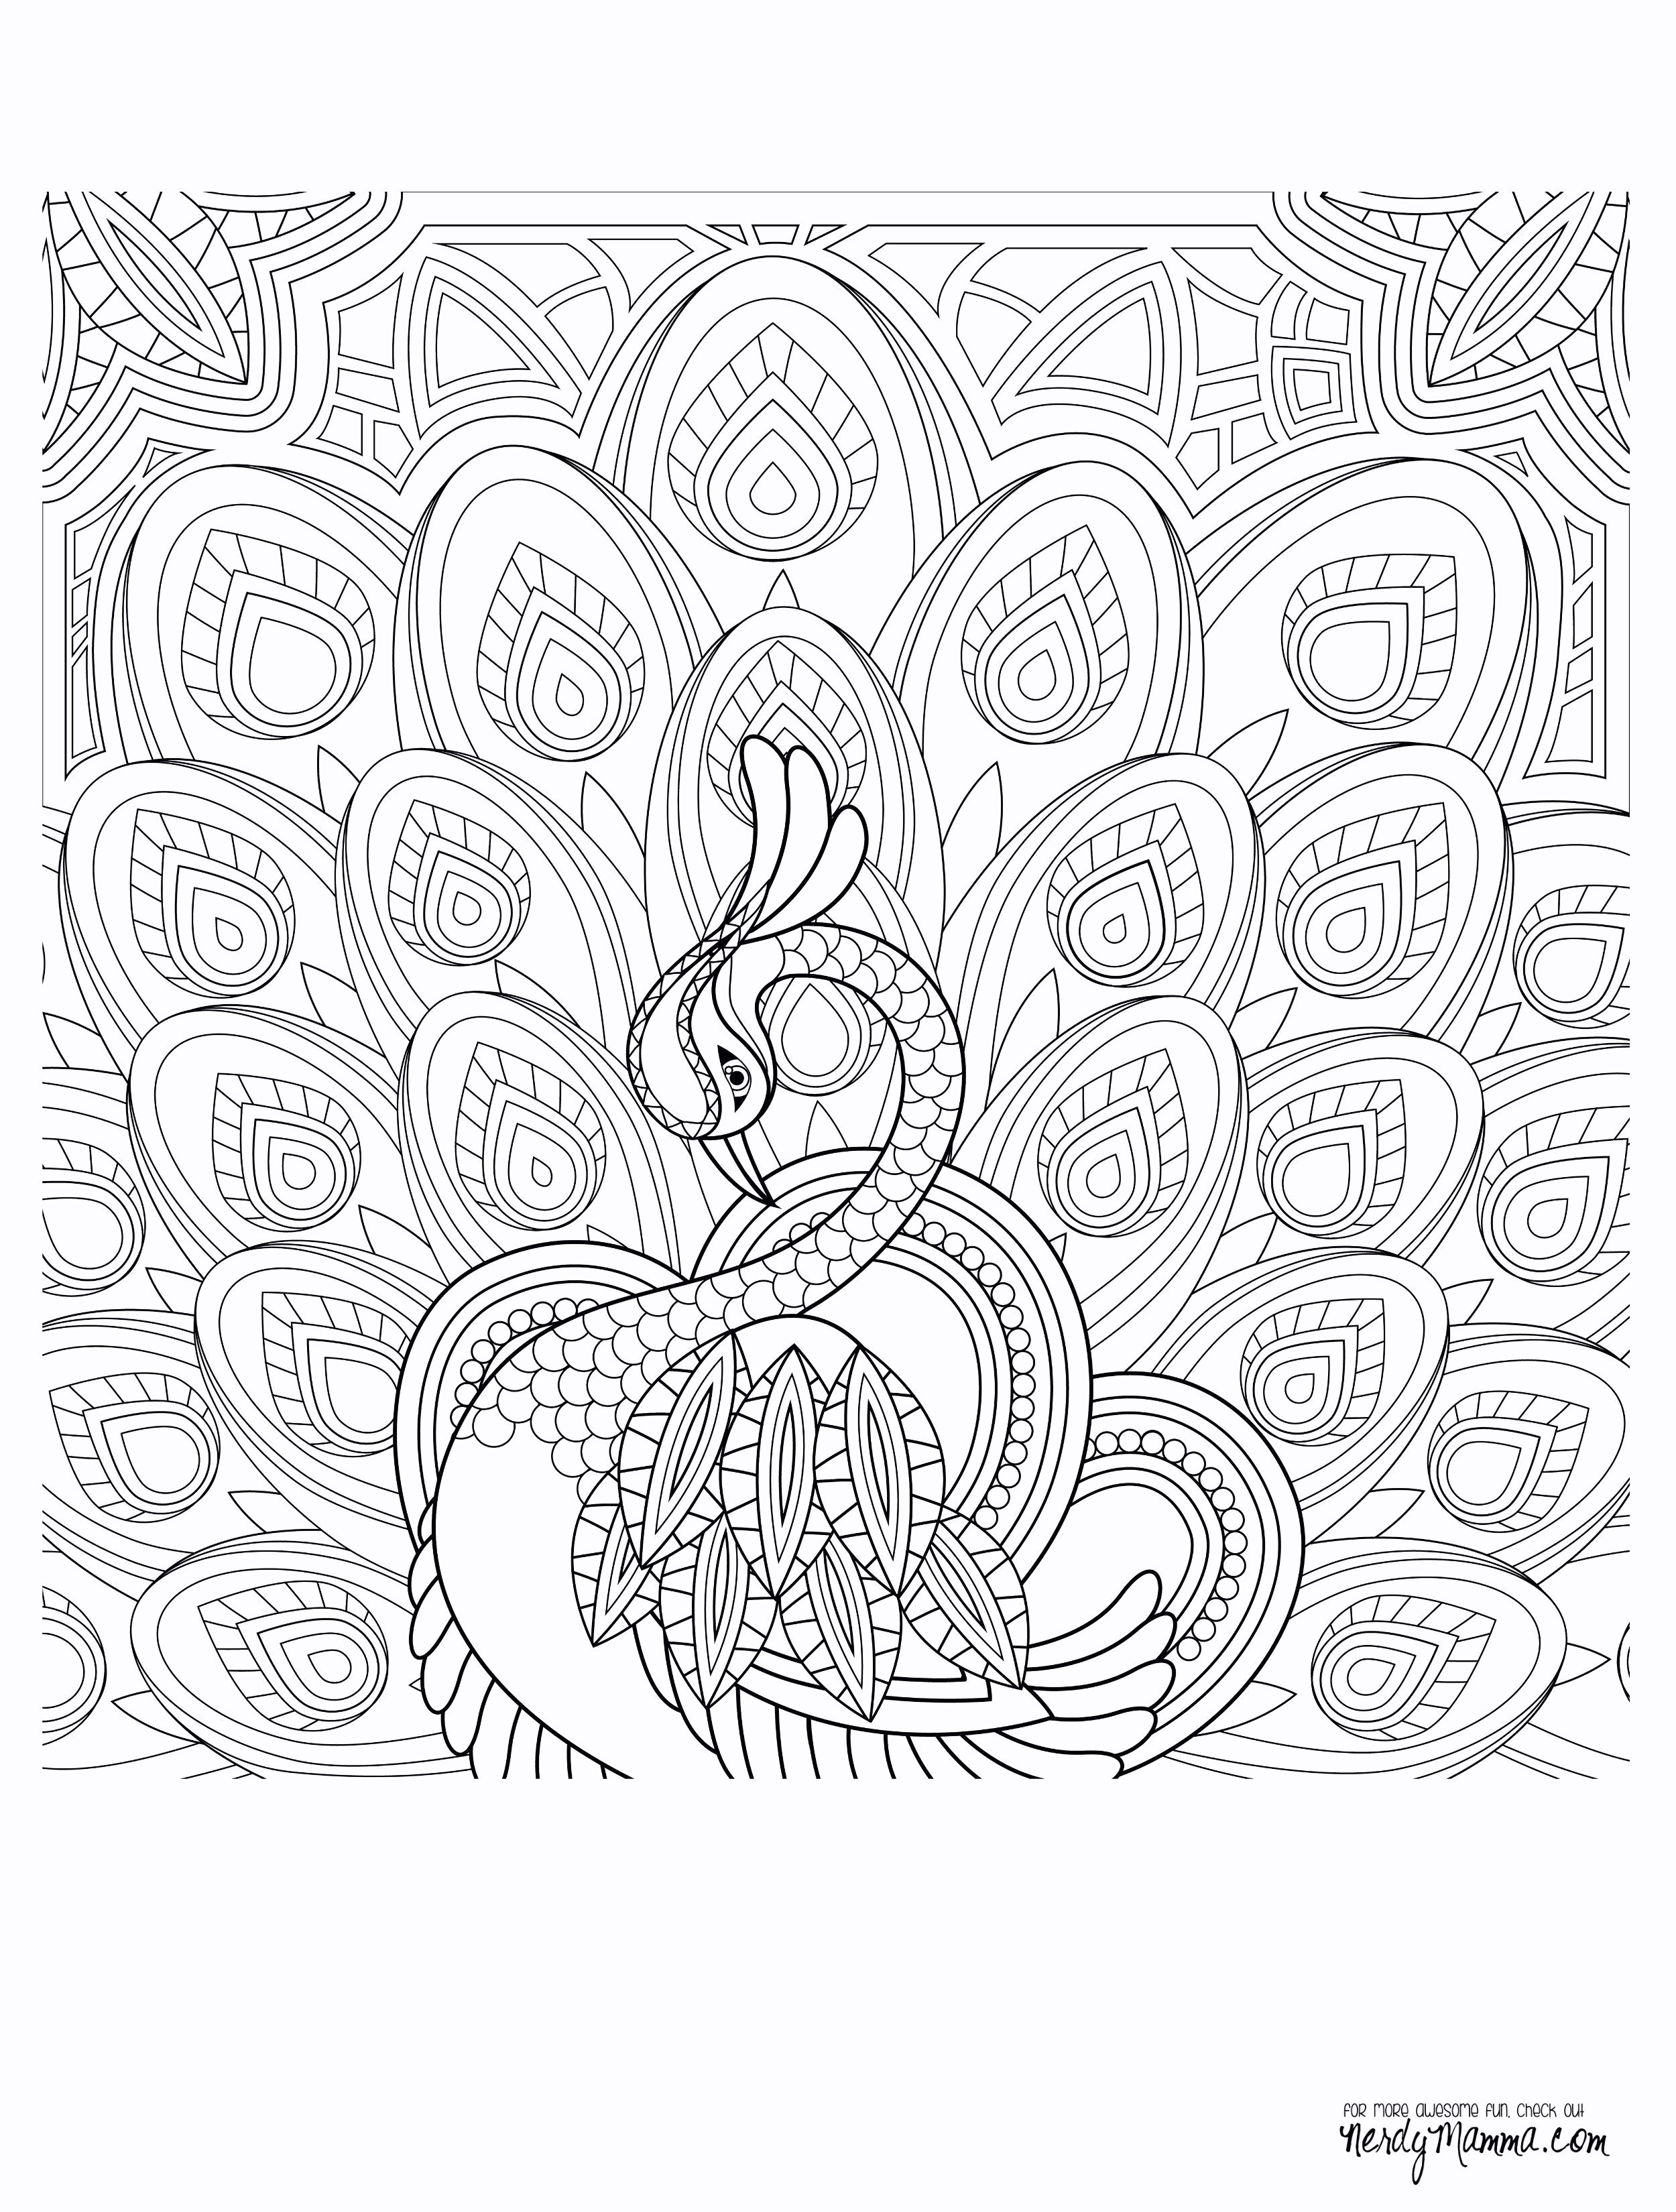 Psalms Coloring Pages  Gallery 5h - Free Download